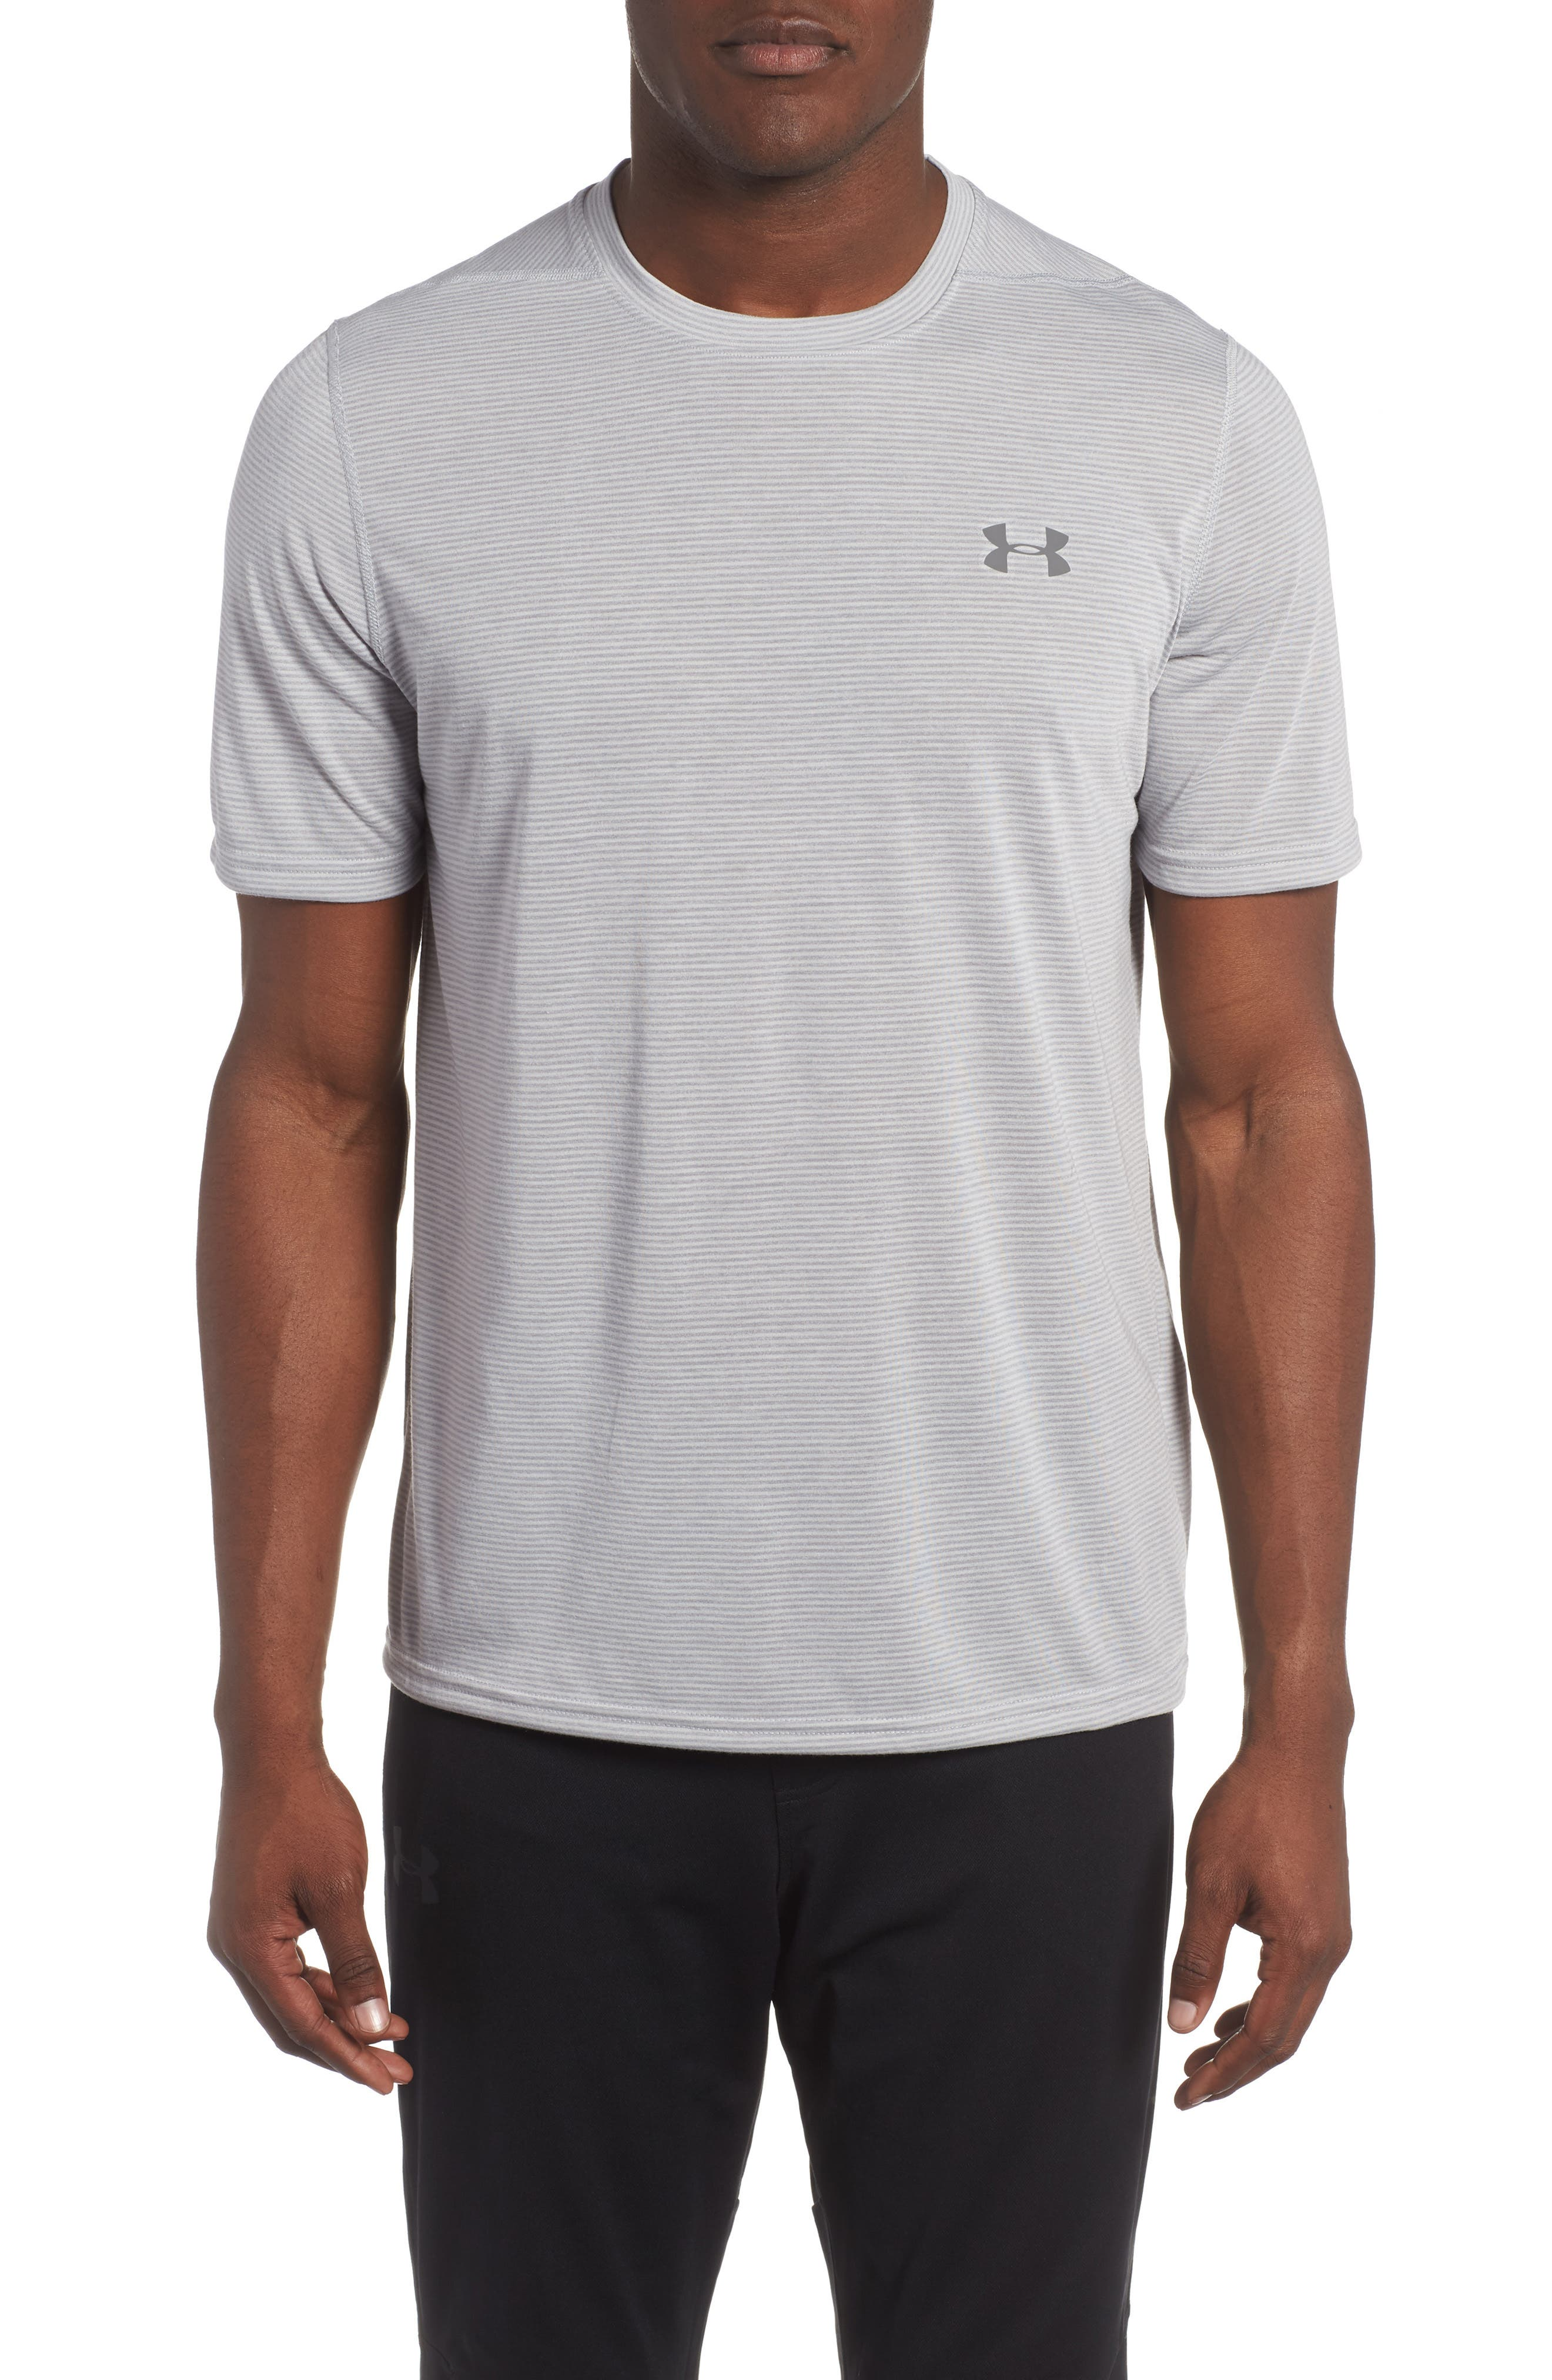 Threadborne Siro Regular Fit T-Shirt,                             Main thumbnail 1, color,                             Overcast Gray/ Graphite